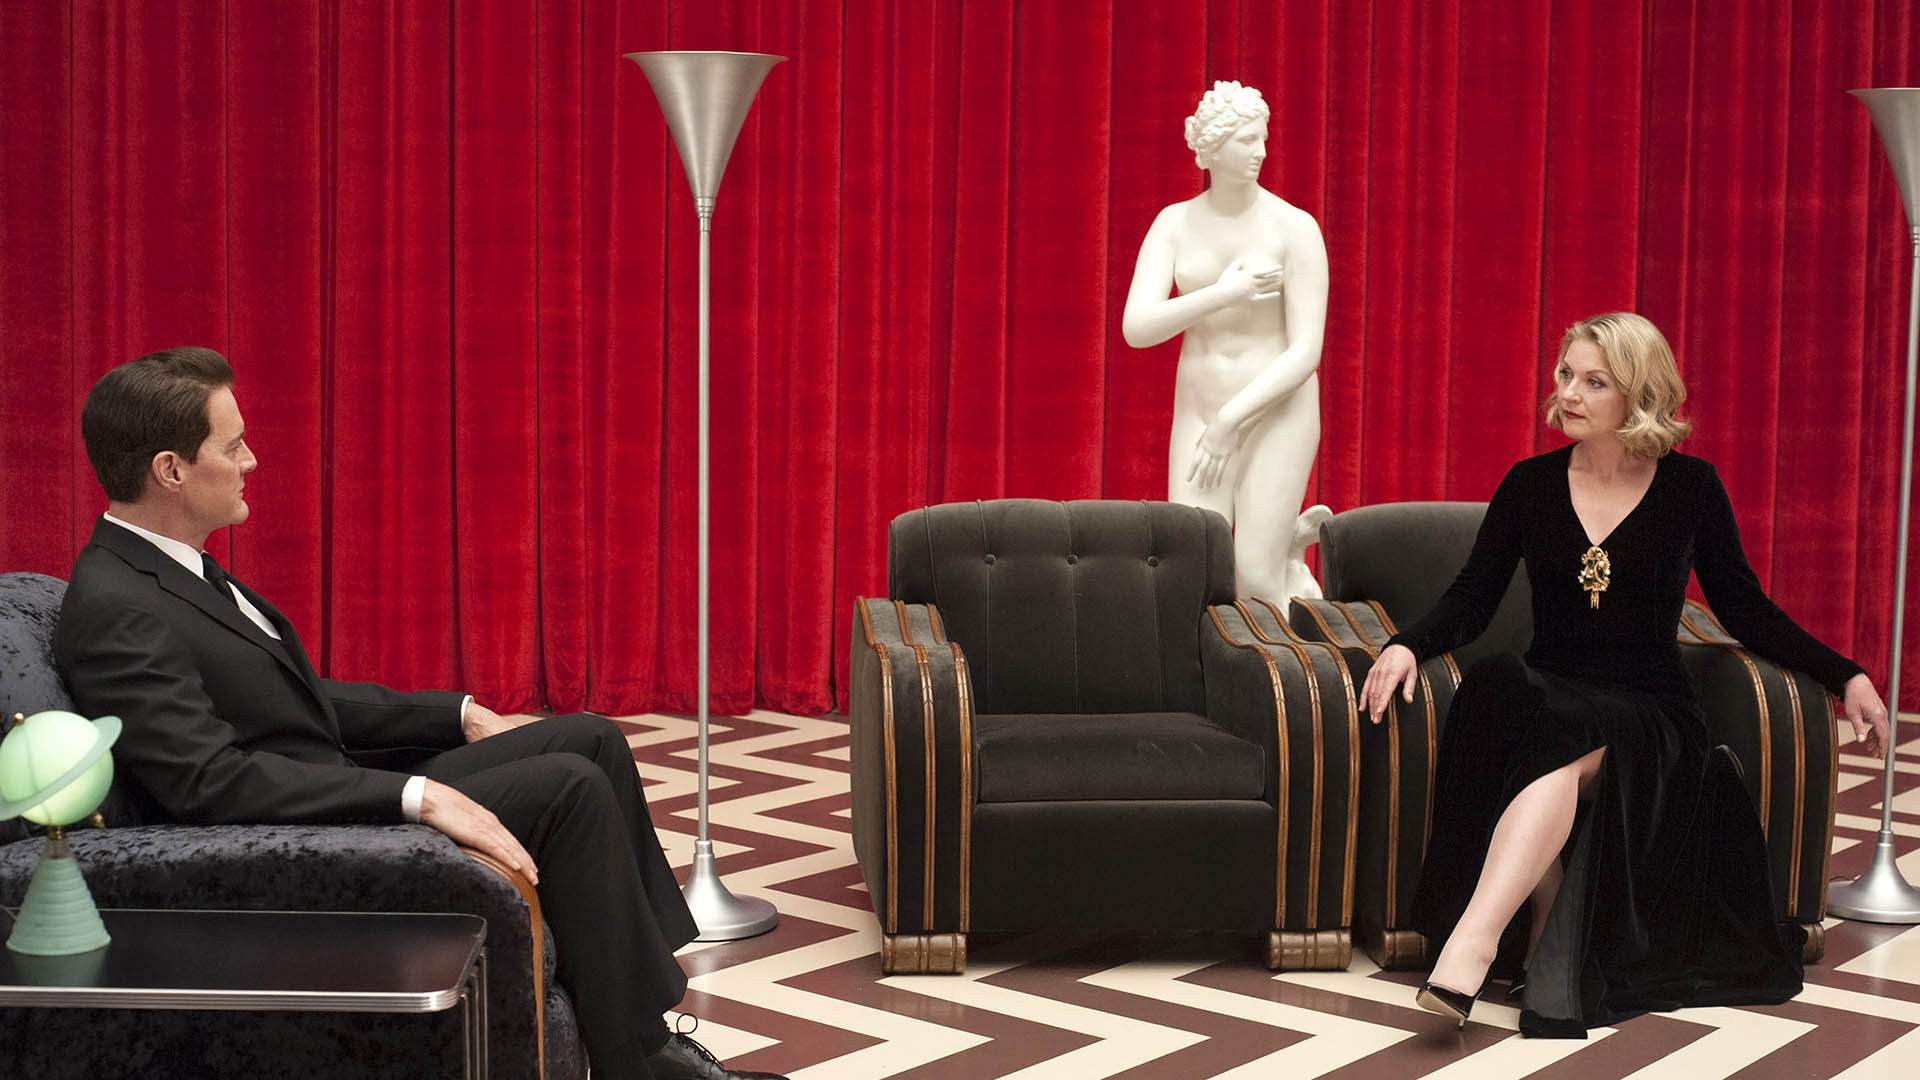 This New 'Twin Peaks' Virtual Reality Game Will Immerse You in a Place Both Wonderful and Strange